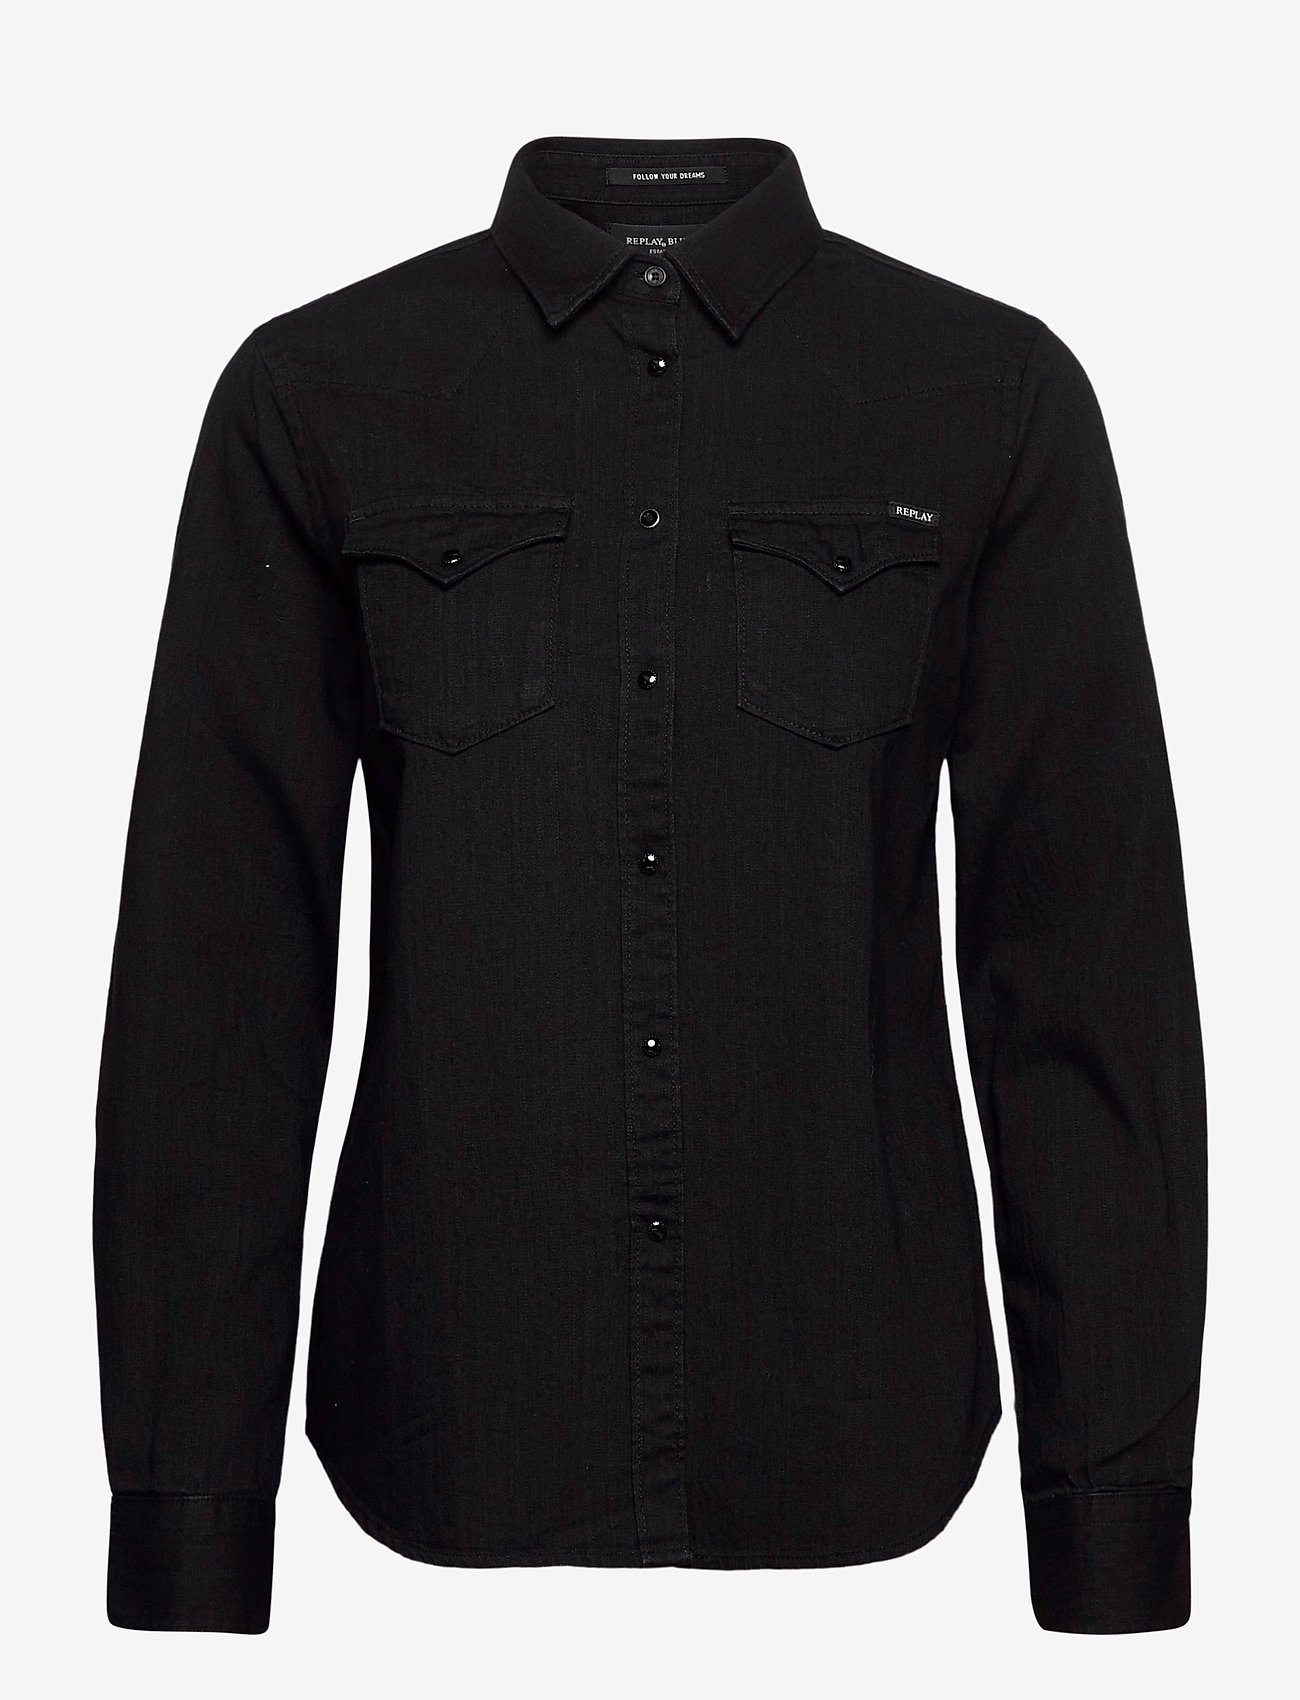 Replay - Shirt - chemises en jeans - black - 0